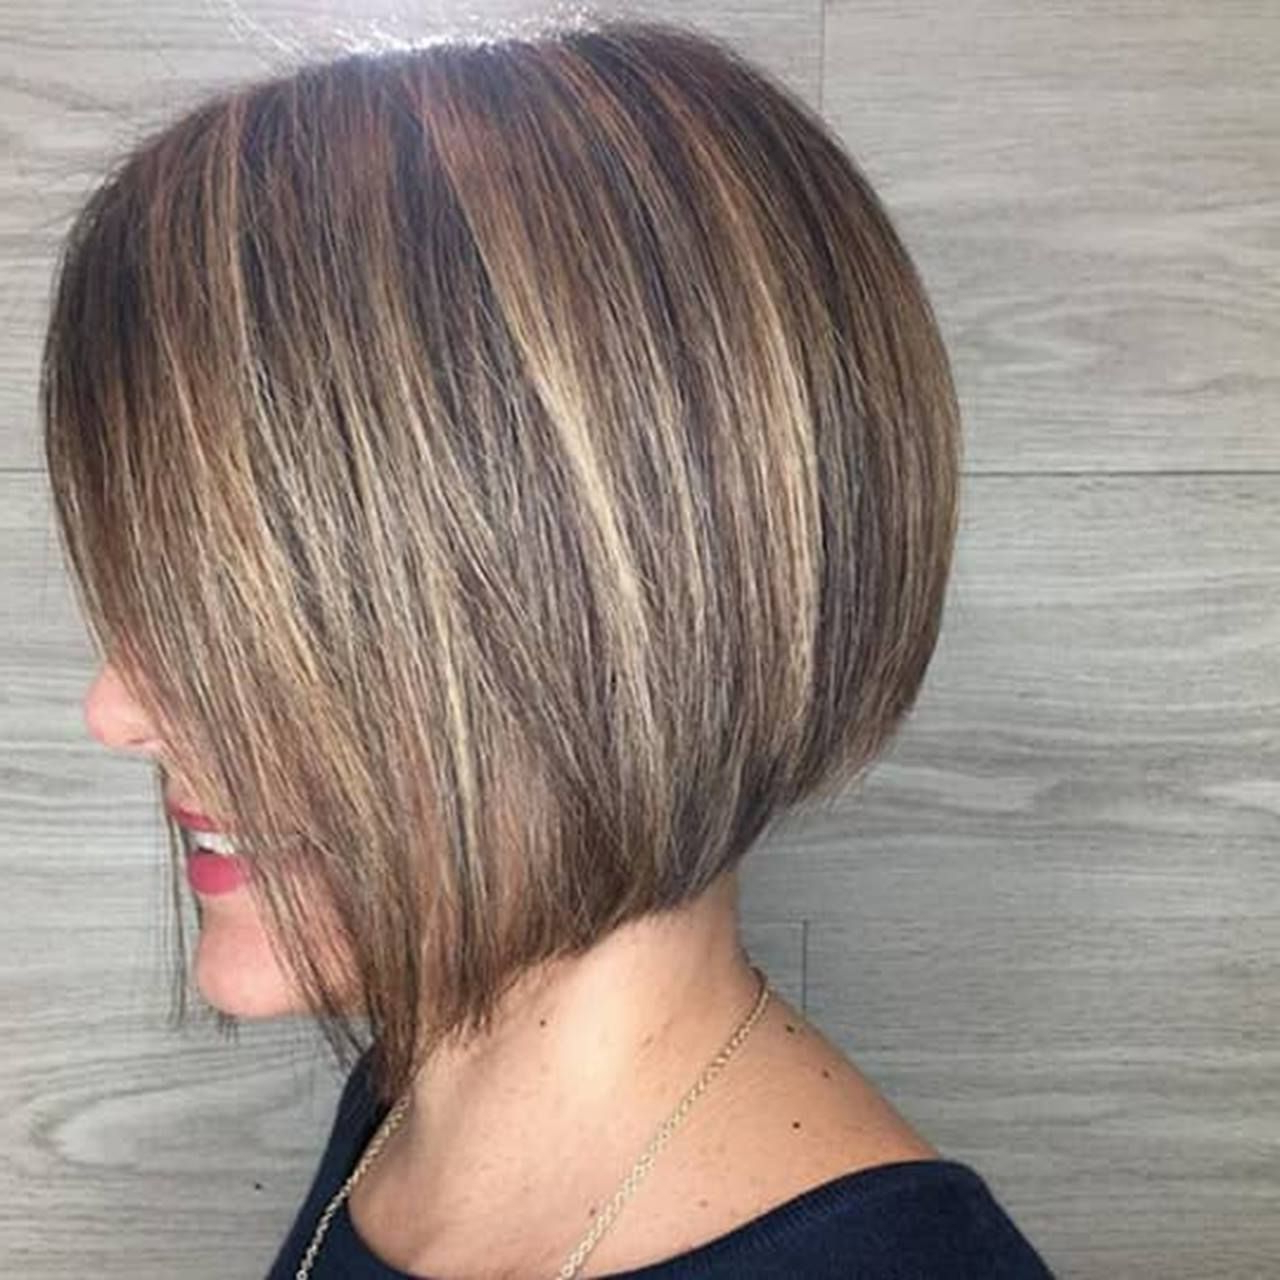 2017 Straight Layered Tresses In A Line Hairstyles Within 17 Layered Bob Hairstyles You'll Want To Try Now (View 2 of 20)